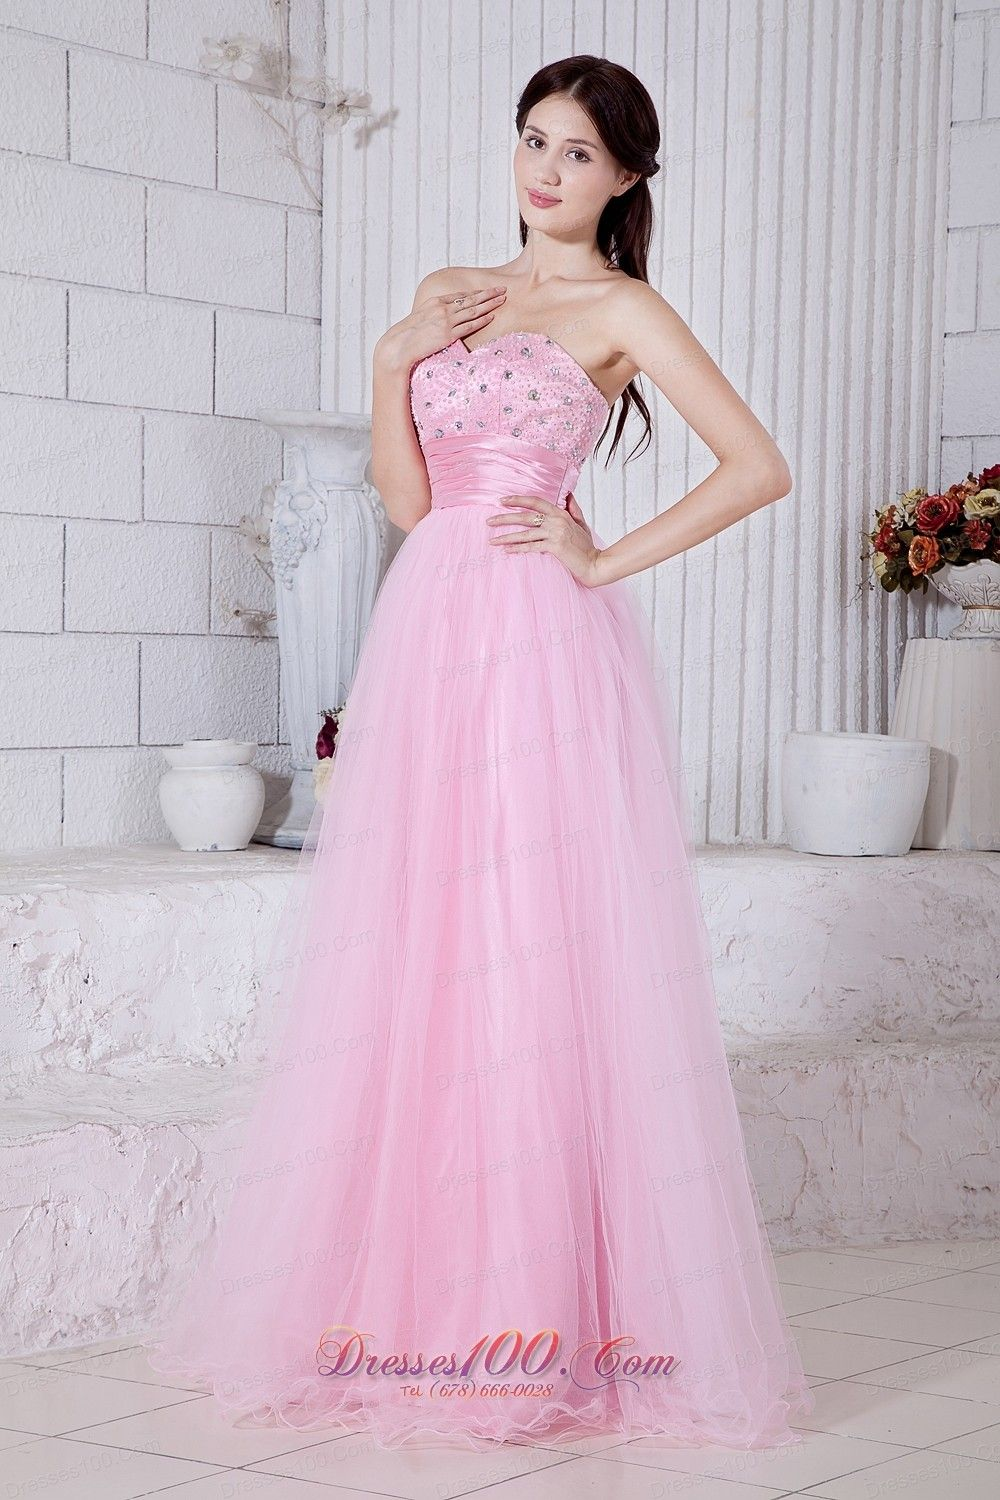 Sunset Pageant Dresses in Hamilton Sunset Pageant Dresses in ...